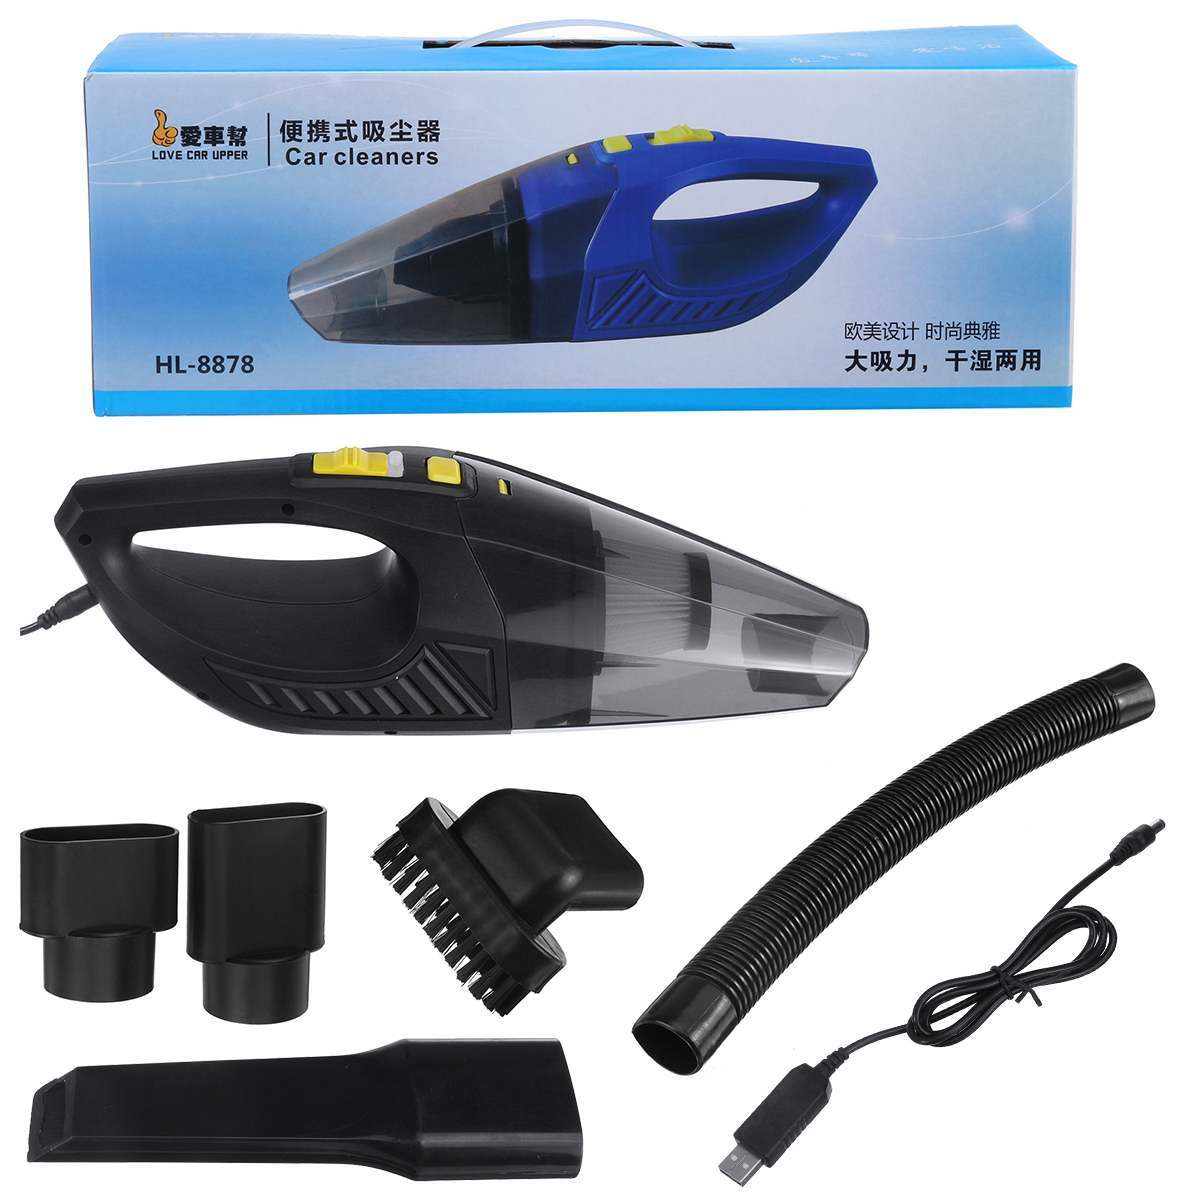 Rechargeable Wireless Wet Dry Car Vacuum Cleaner Mini Portable Handheld Vehicle Auto Home Cleaning Tool